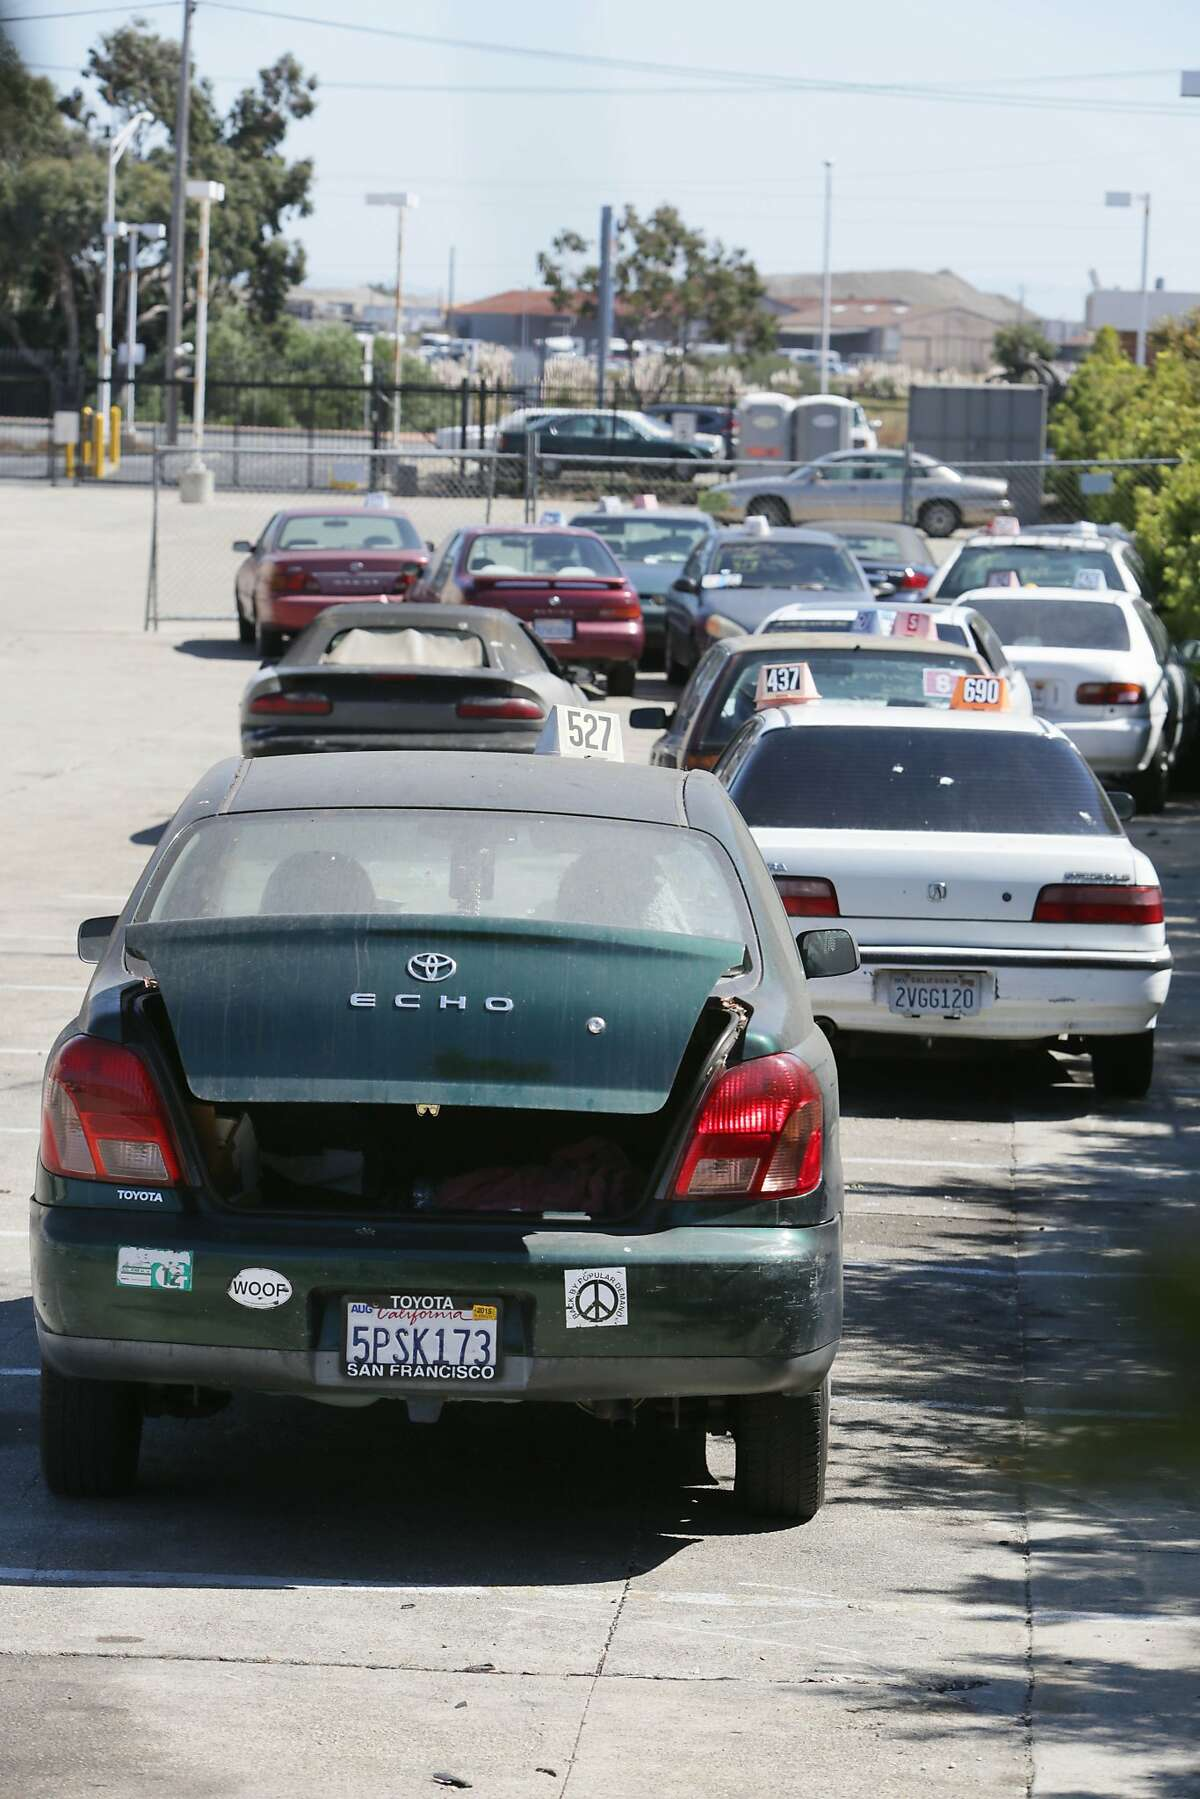 A car that was stolen (foreground) sits in a lot with other impounded vehicles at the Auto Return Bayshore Long Term Facility on Friday, September 18, 2015 in San Francisco, Calif.